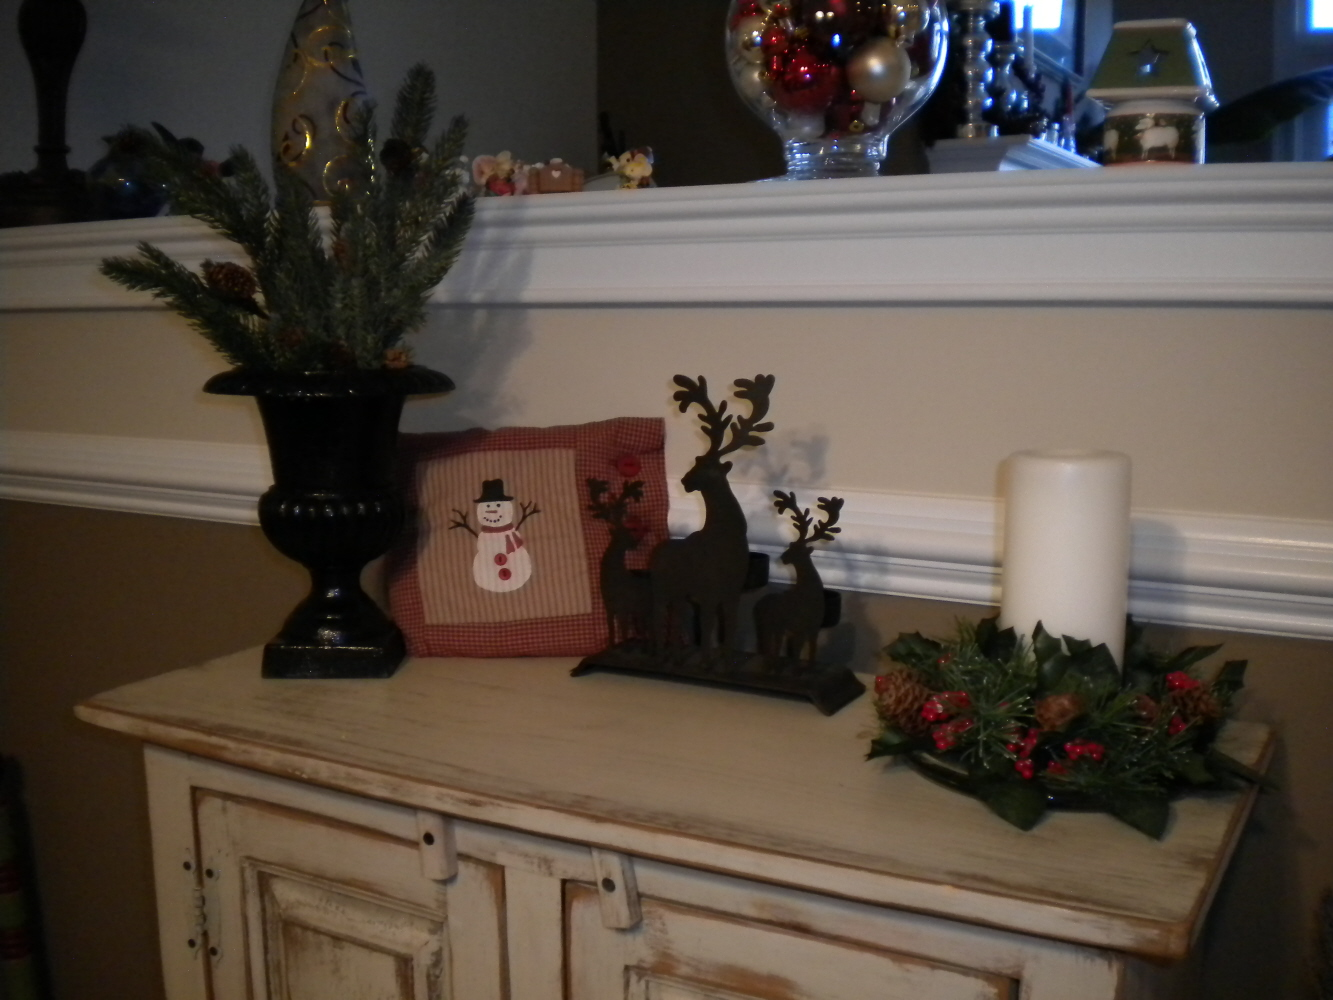 Sherri - Christmasdecorations On Cupboard Top's Jubilee: 2010 cabinet Decorations Part I